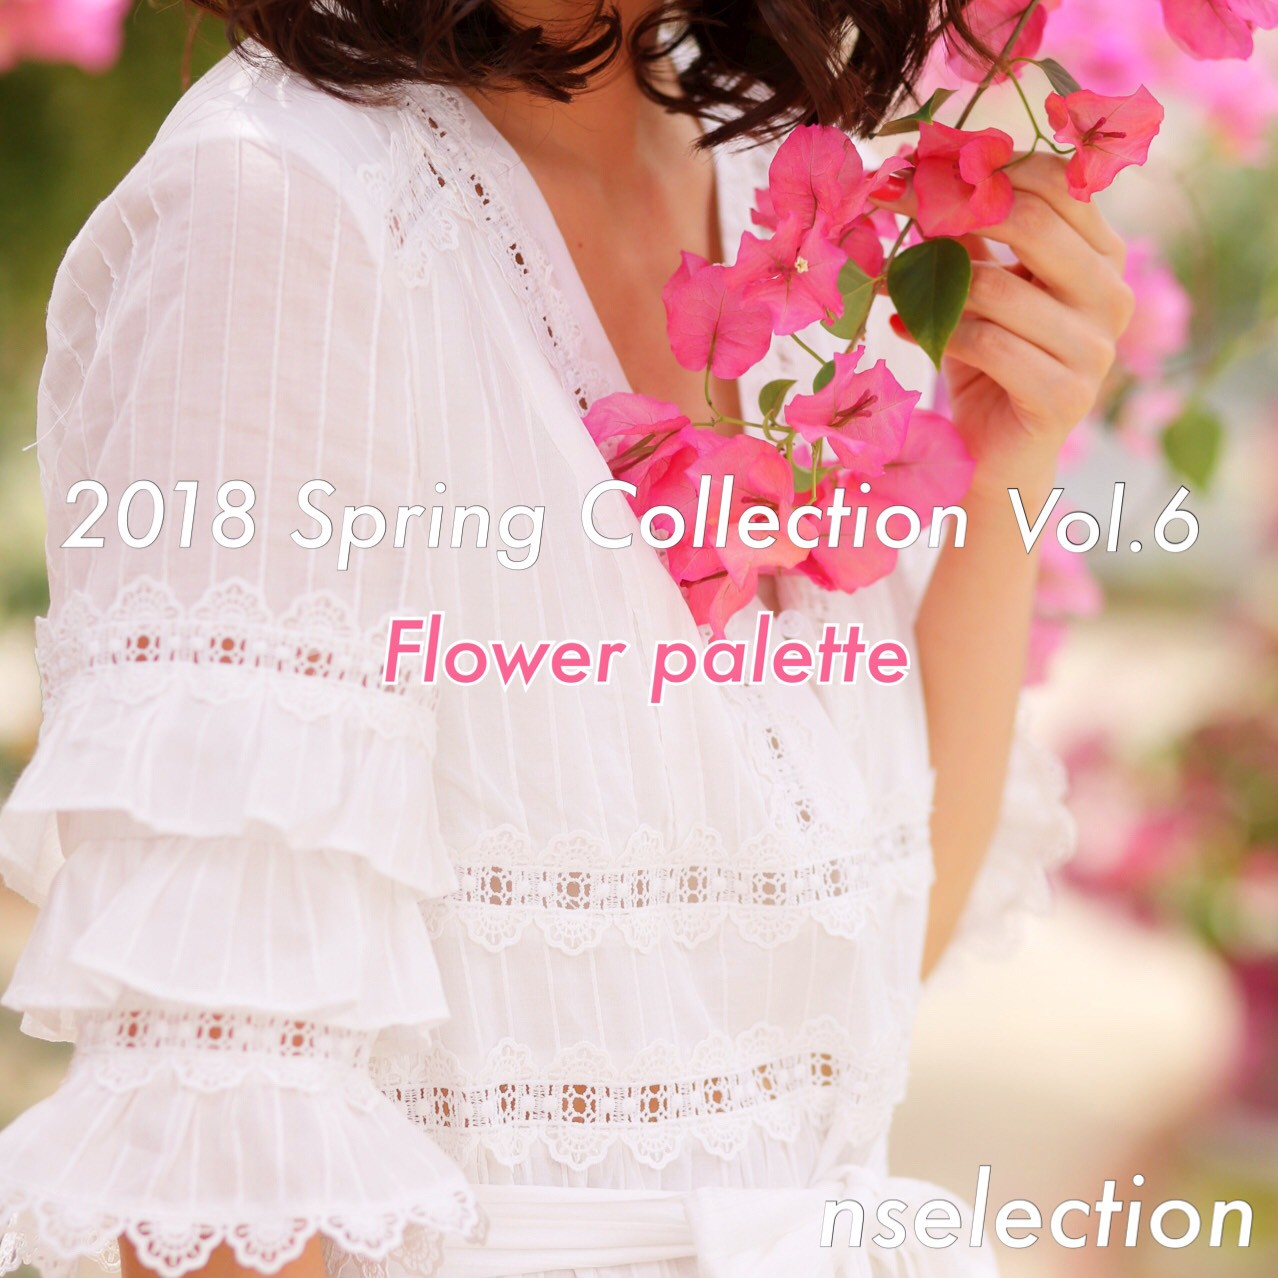 2018 SPRING COLLECTION VOL.6 SYLING LOOK